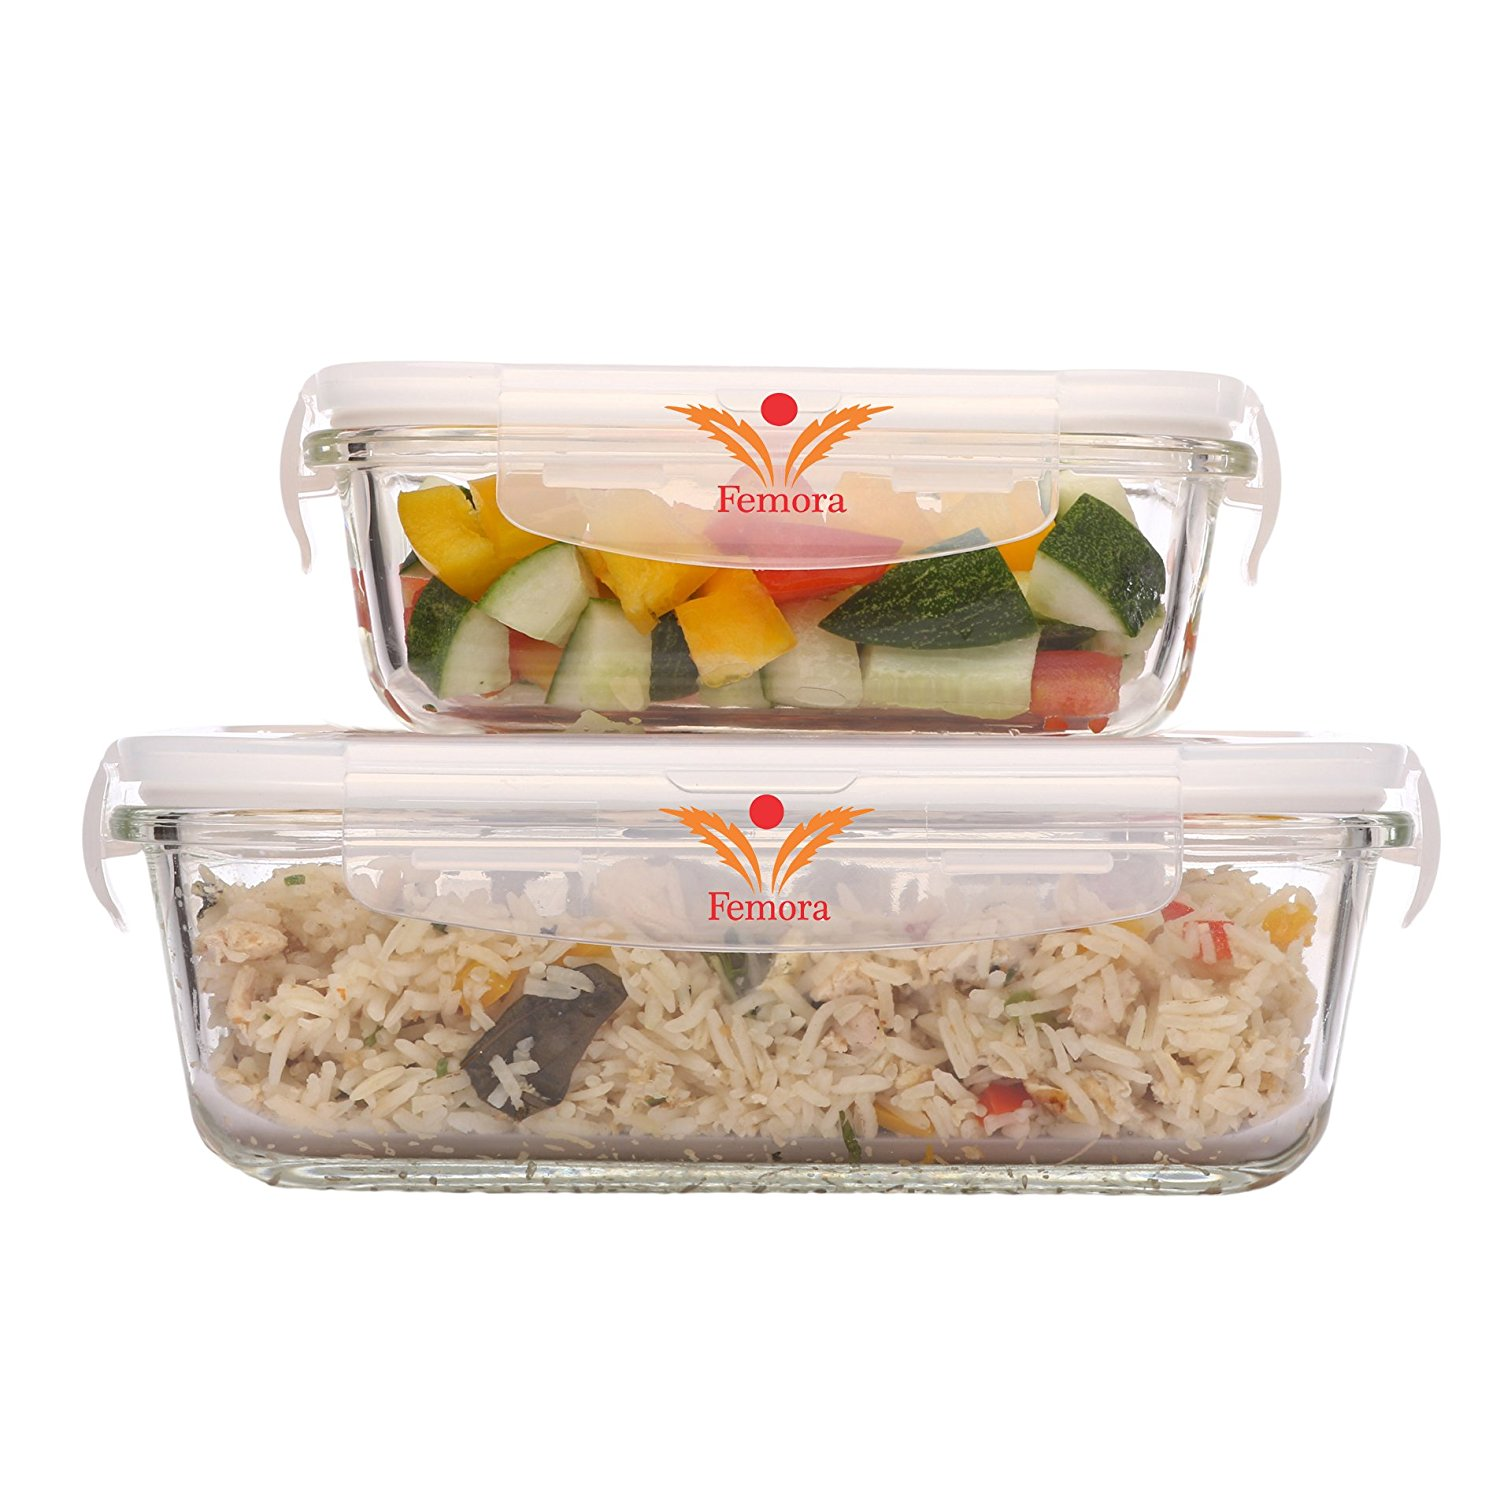 Borosilicate Glass Rectangular Container with Air Vent Lid- 1000 ML, 400 ML, Set of 2